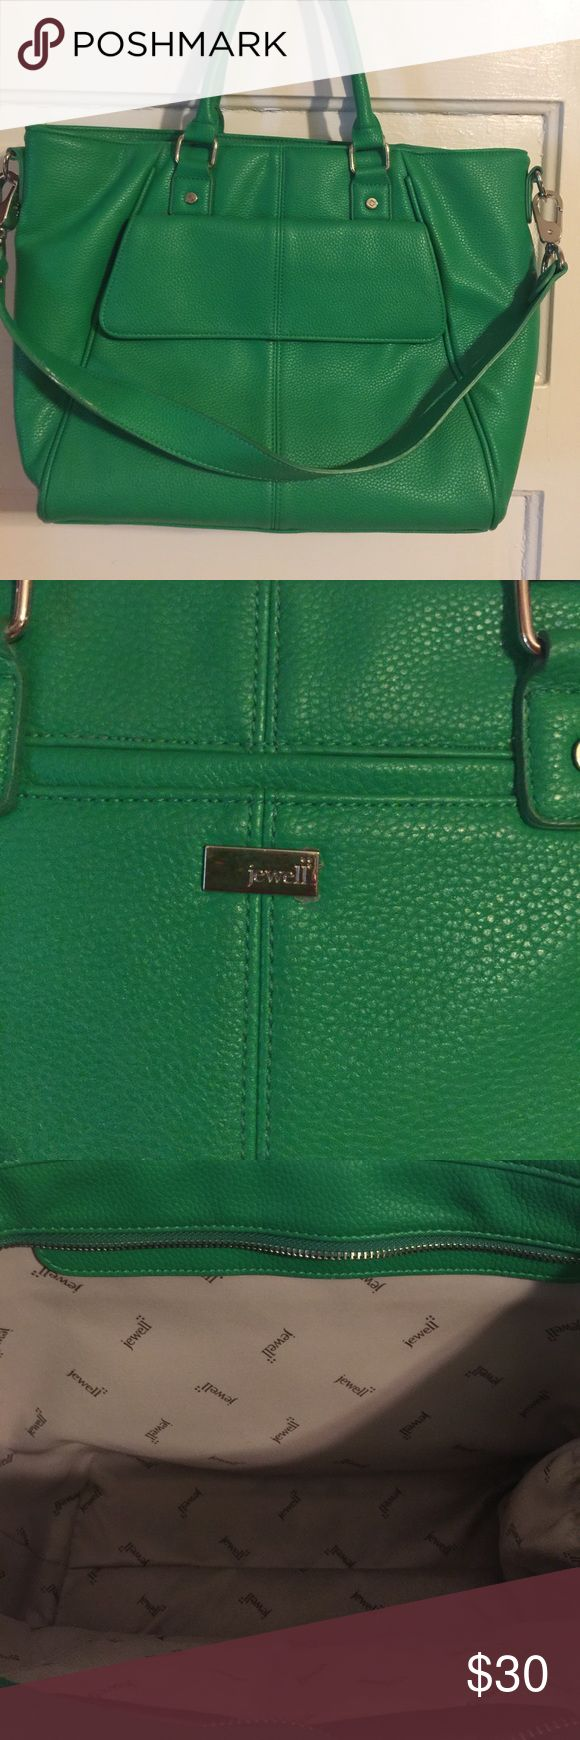 Jewell Diamond District in Gataby's Green Garden Larger Jewell bag in a fun green. What a great way to pop some color into your wardrobe! Functional bag has a zip closure, outer cell phone pocket, removable shoulder strap and functional outer pocket. Jewell Bags Shoulder Bags